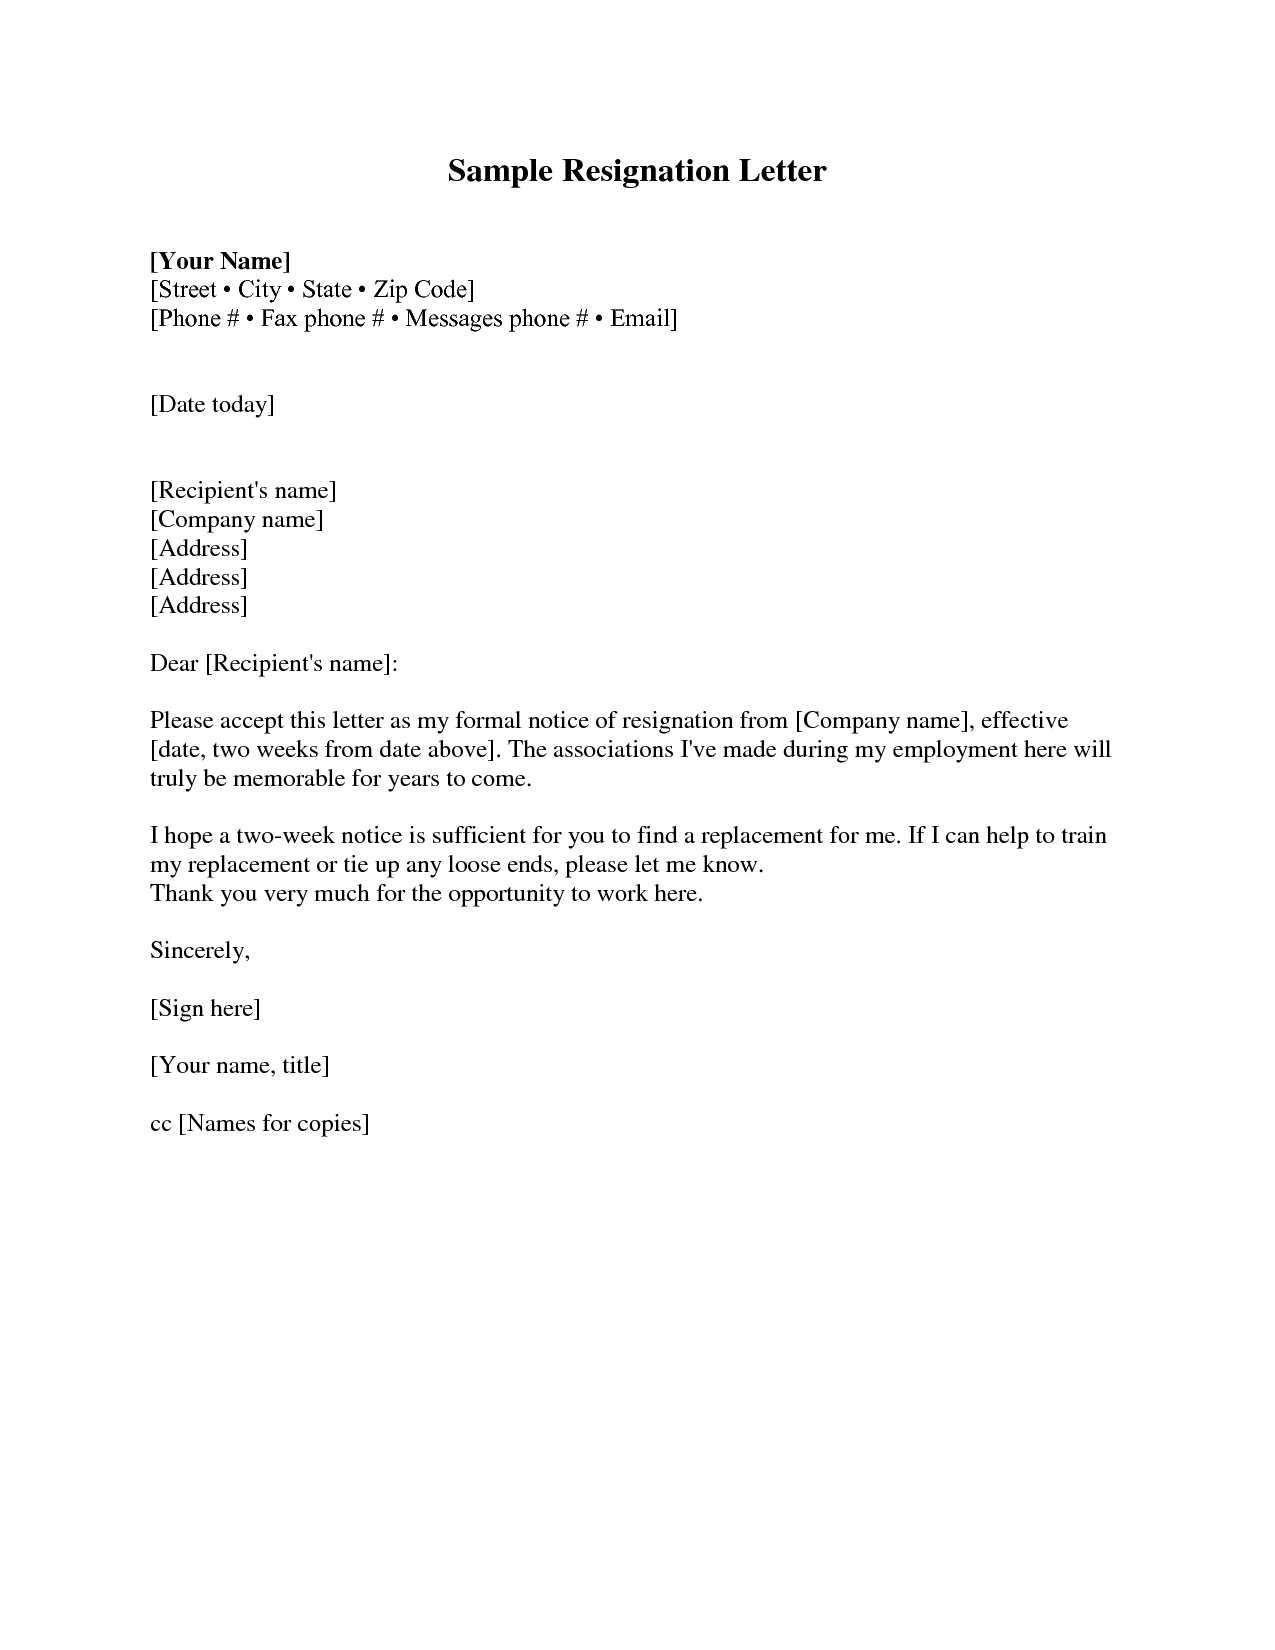 Resignation Format Resignation Letter Sample 2 Weeks Notice  Free2Img  Yup